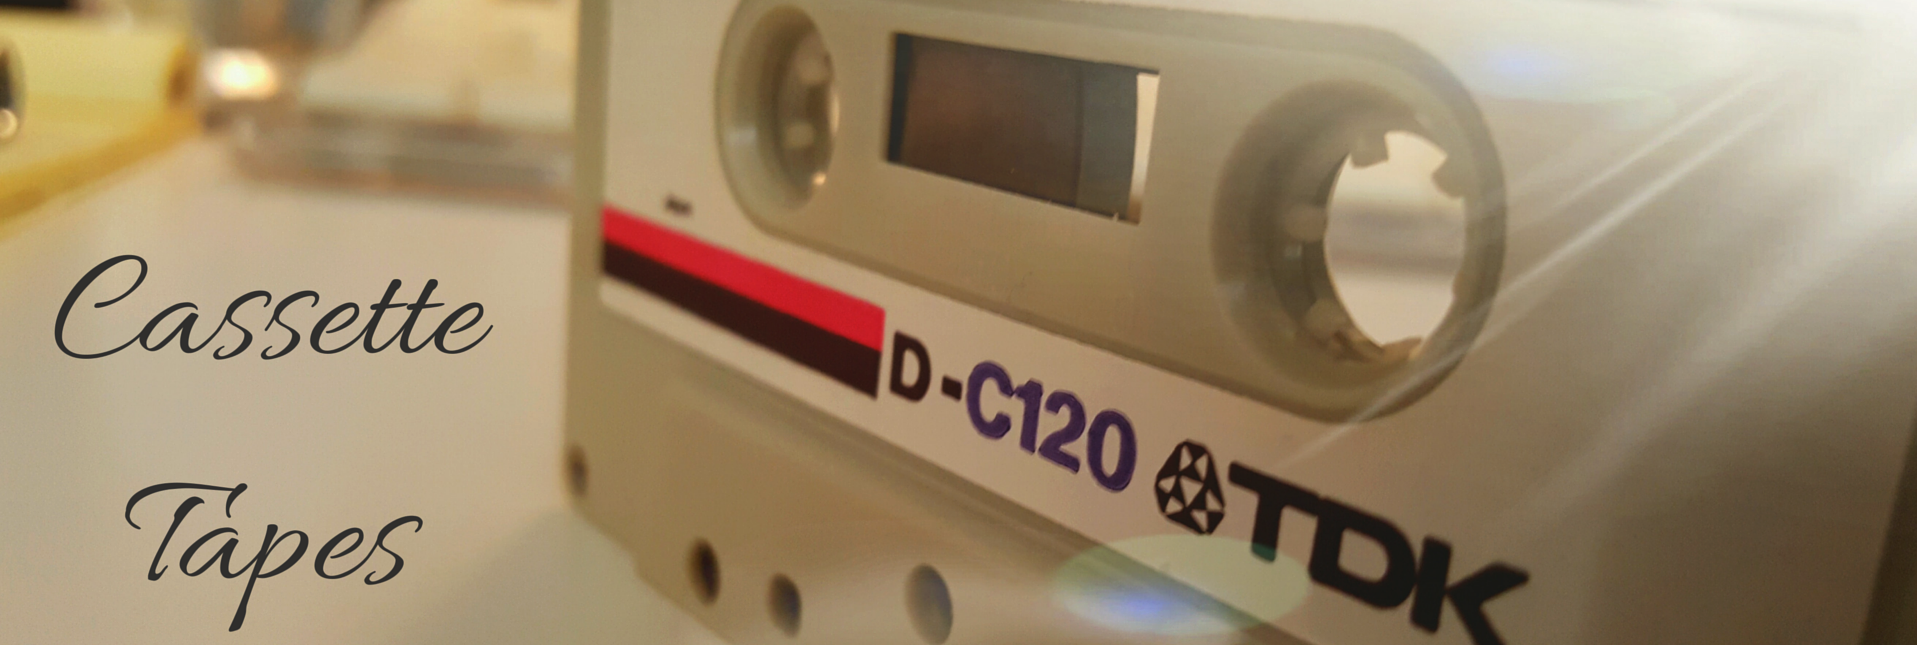 Tape to CD Transfers-Cassette